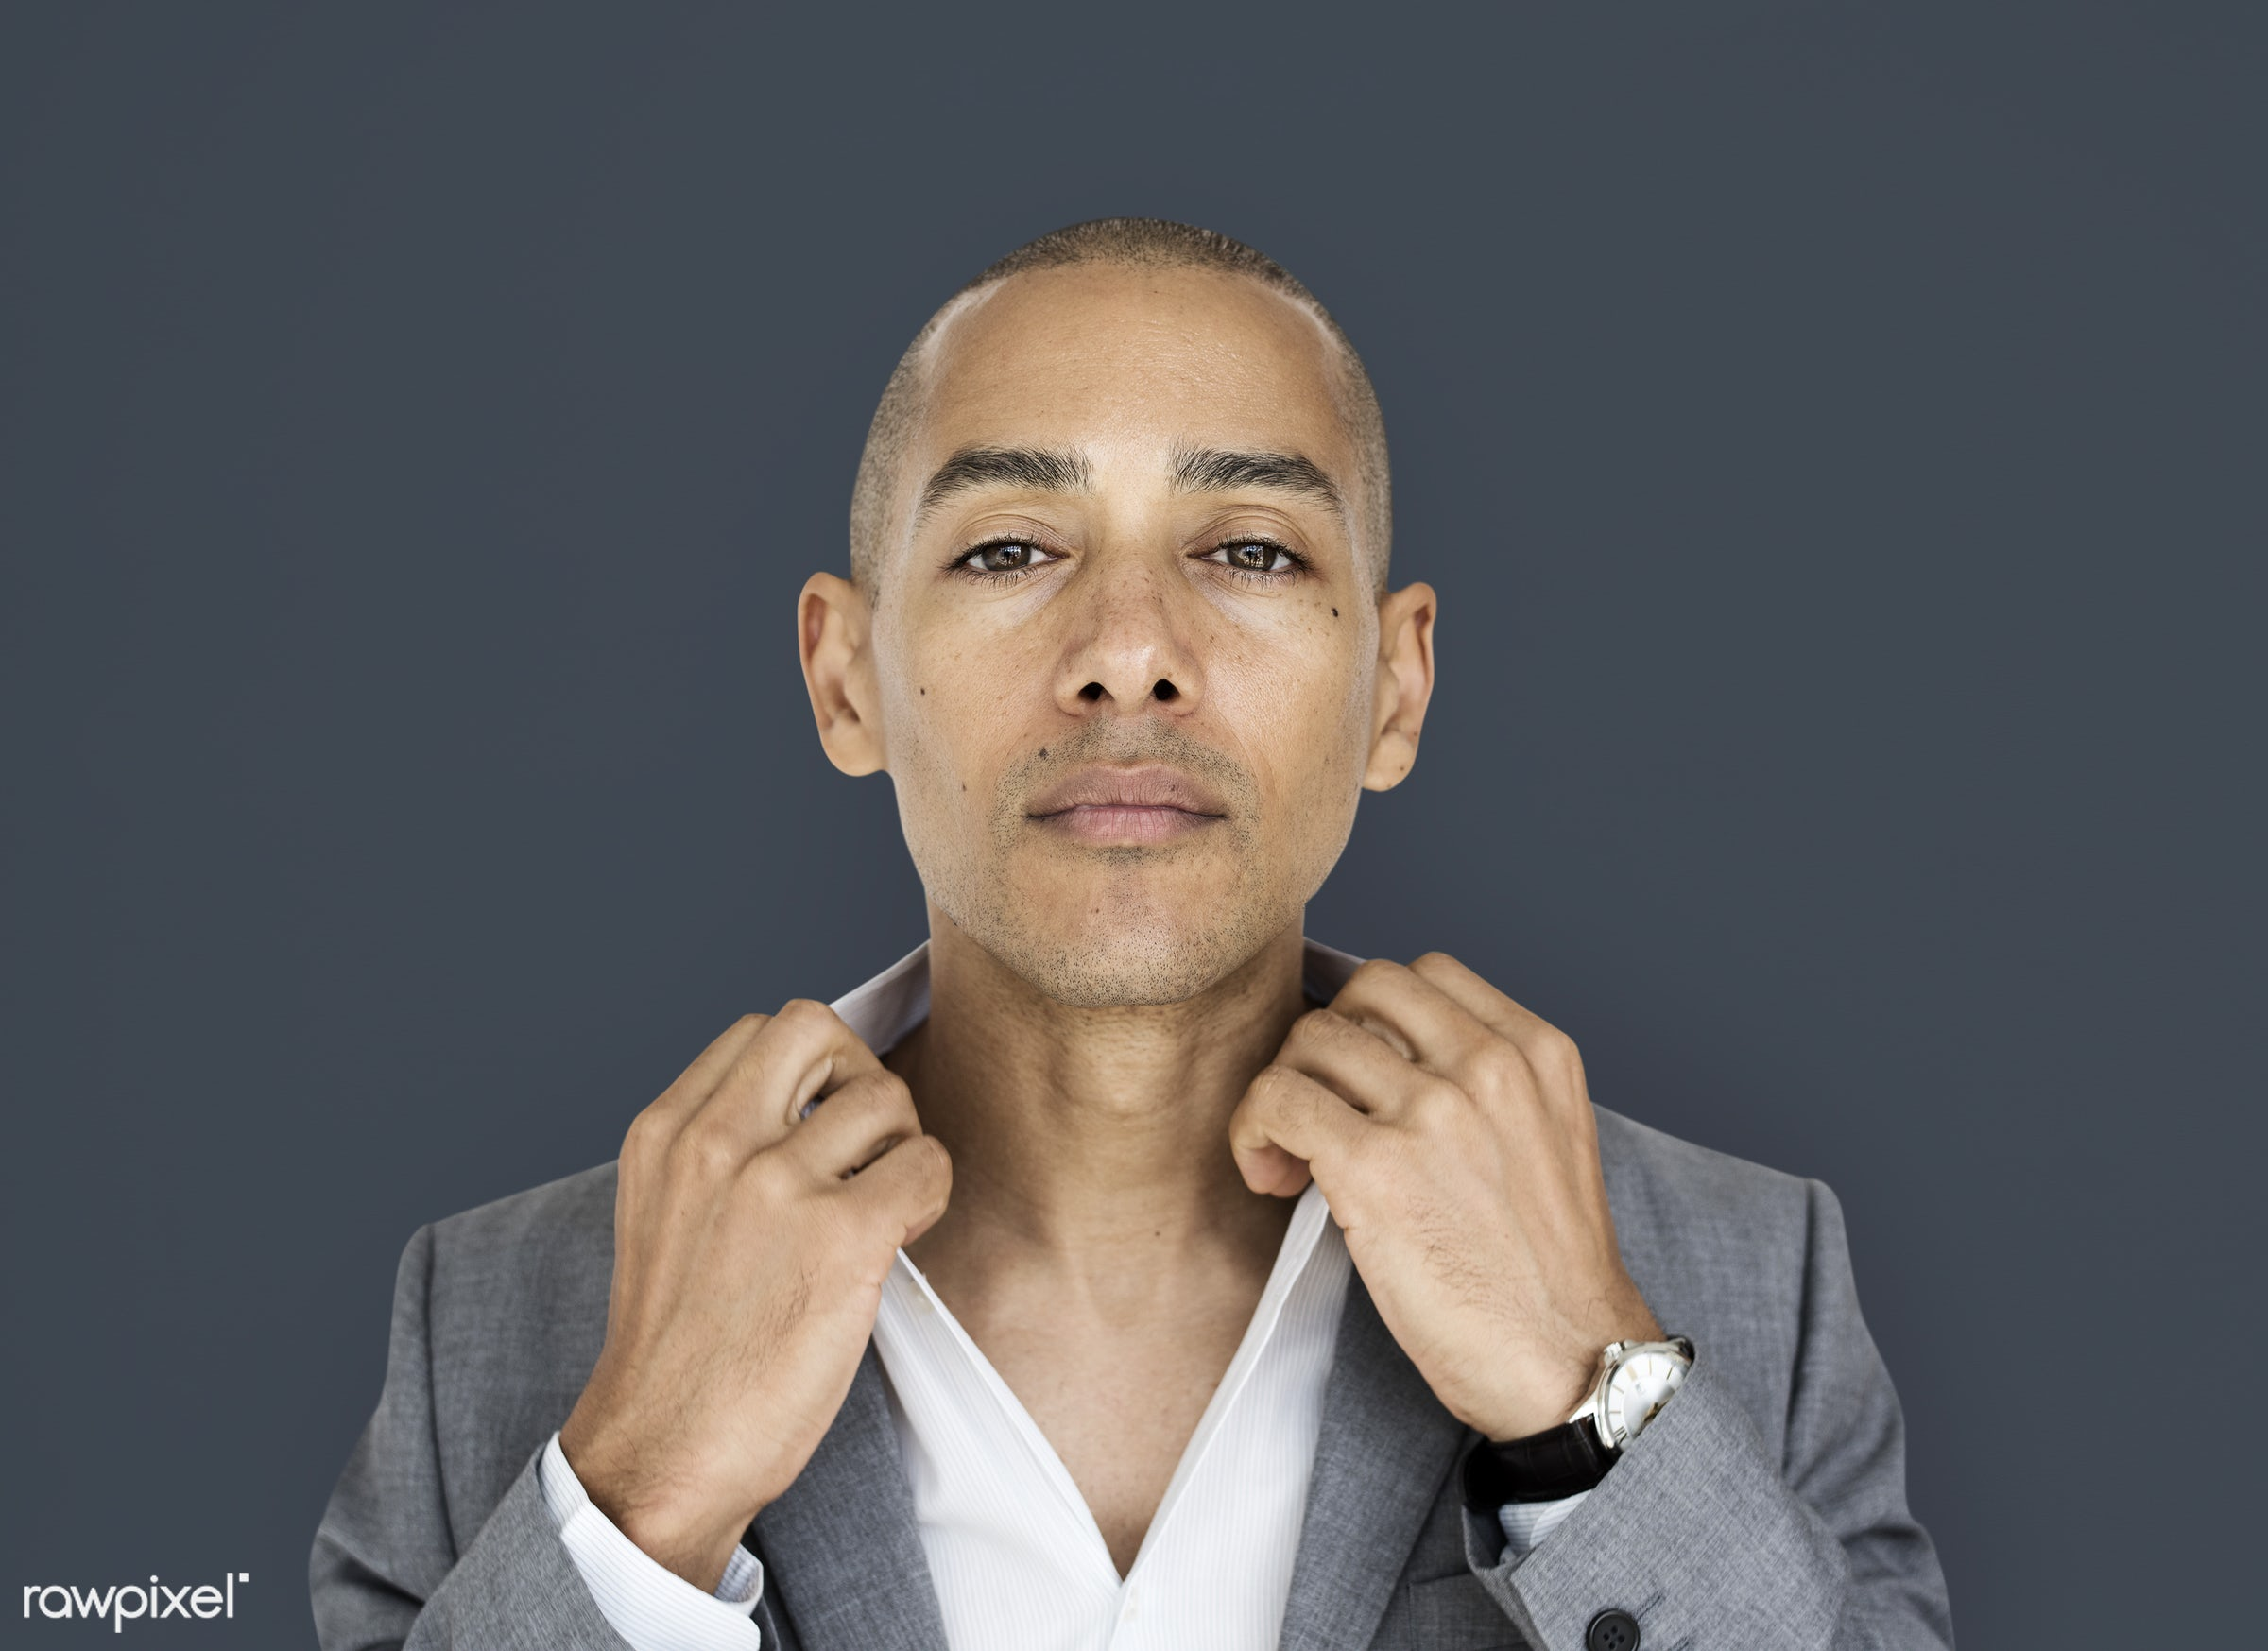 expression, studio, face, person, courage, carefree, people, business, businessman, fresh, casual, mixed race, man, isolated...